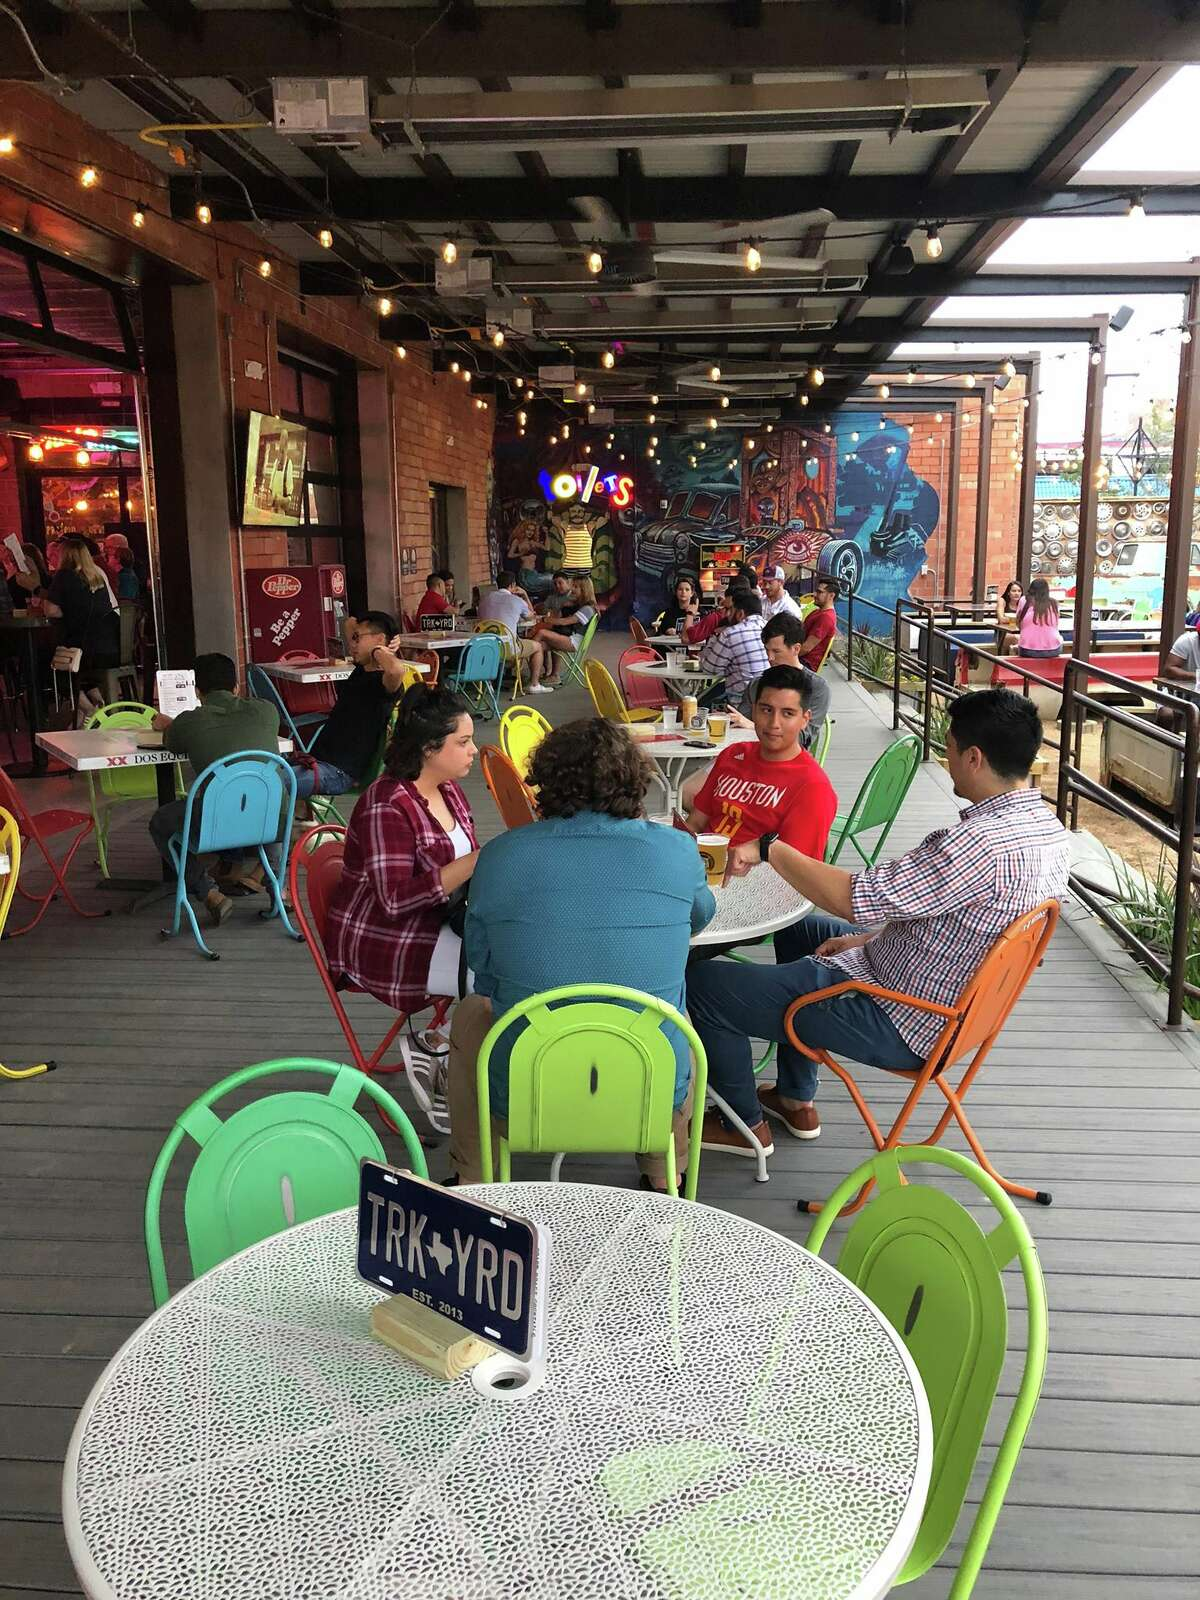 Truck Yard opened May 2 on Lamar Street and calls itself a